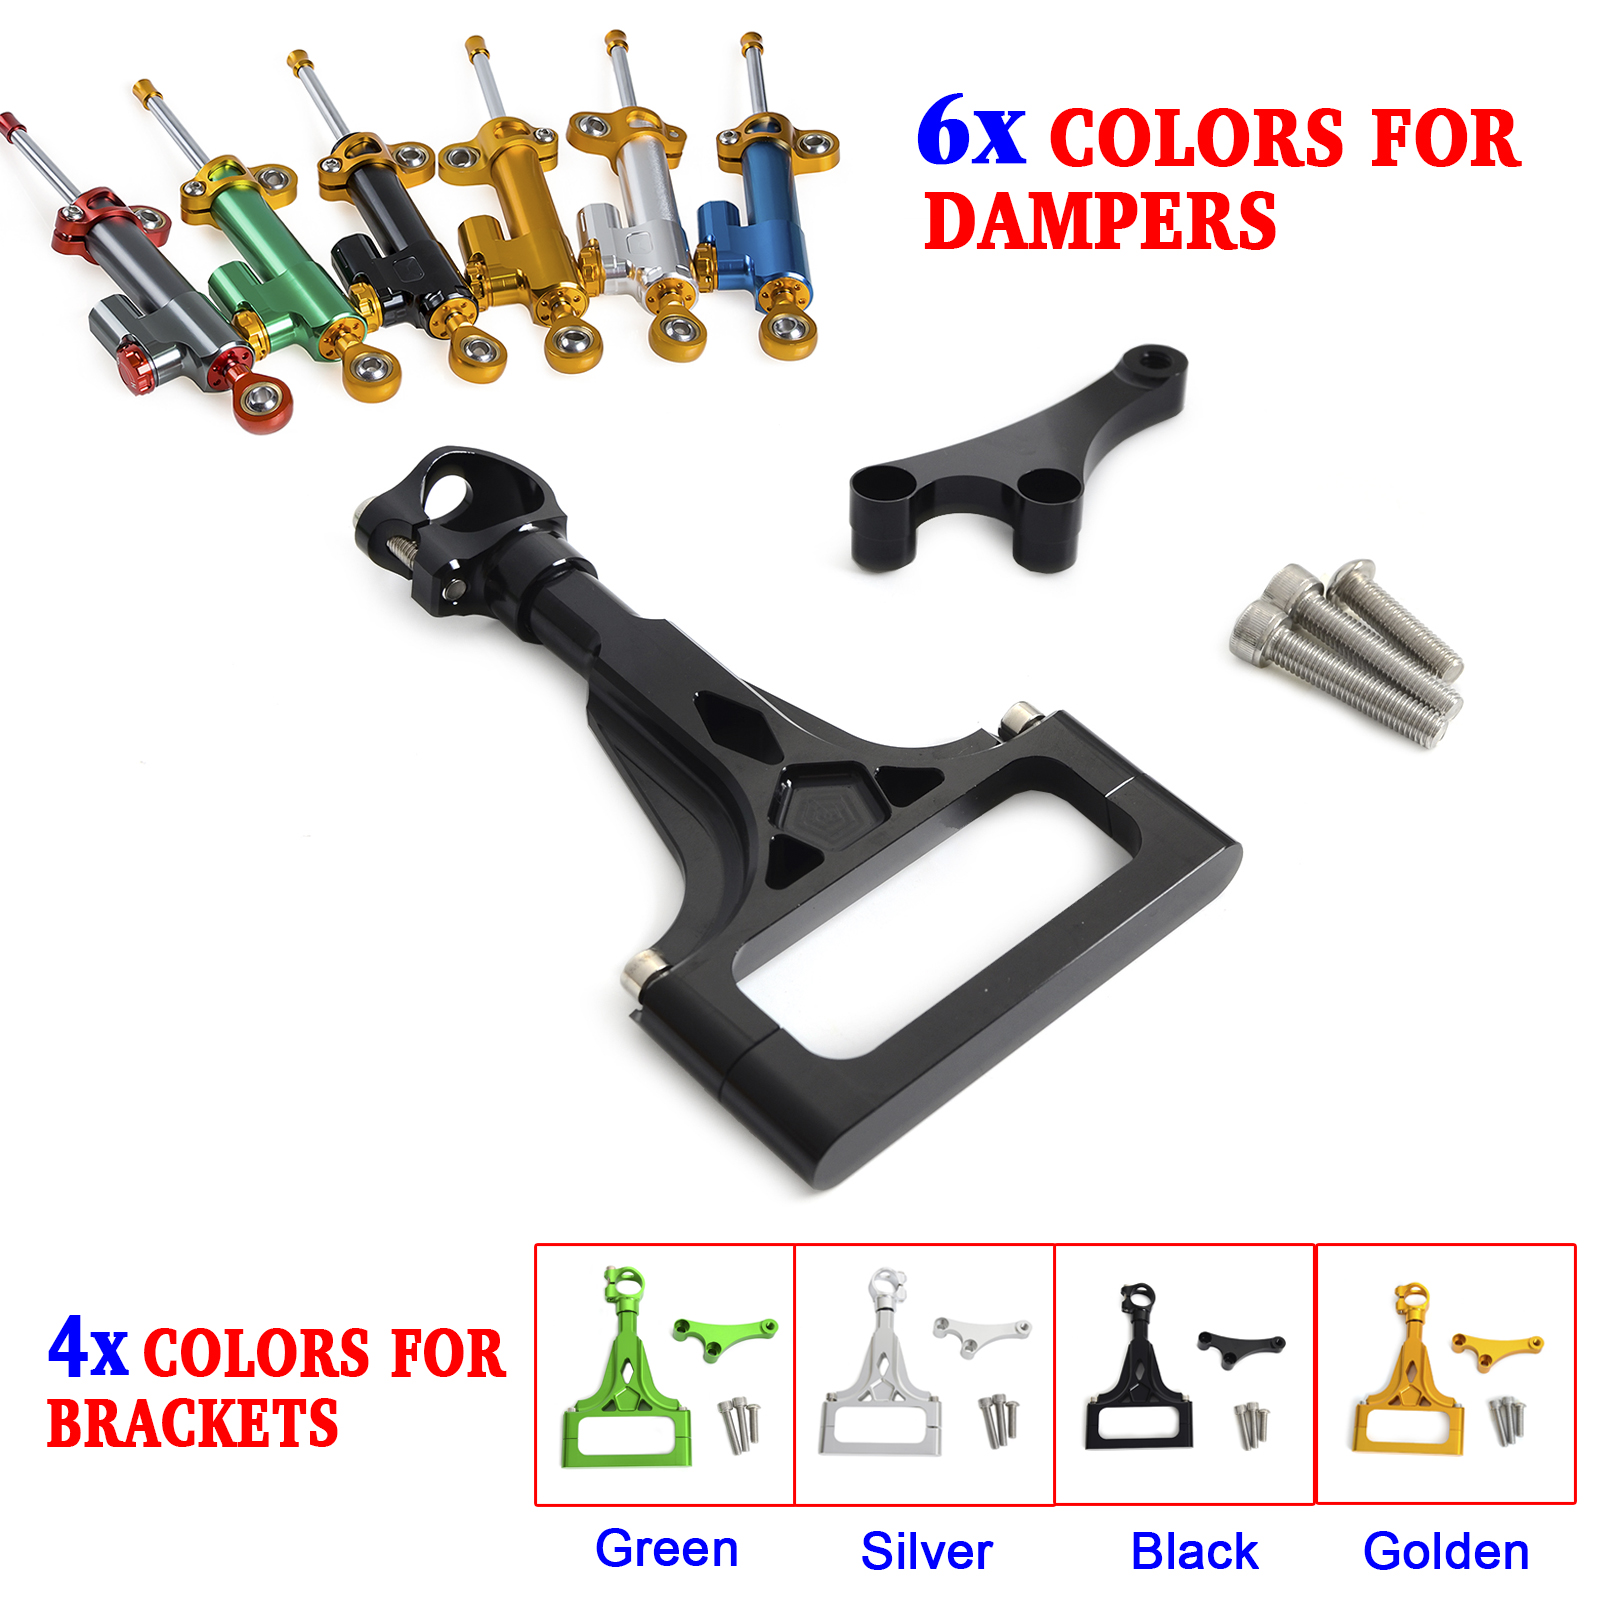 Motorcycle CNC Steering Damper Stabilizer & Bracket for Kawasaki Z750 ABS 2003-2012 Z750R 2011 2012 Z1000 ABS 2003-2009